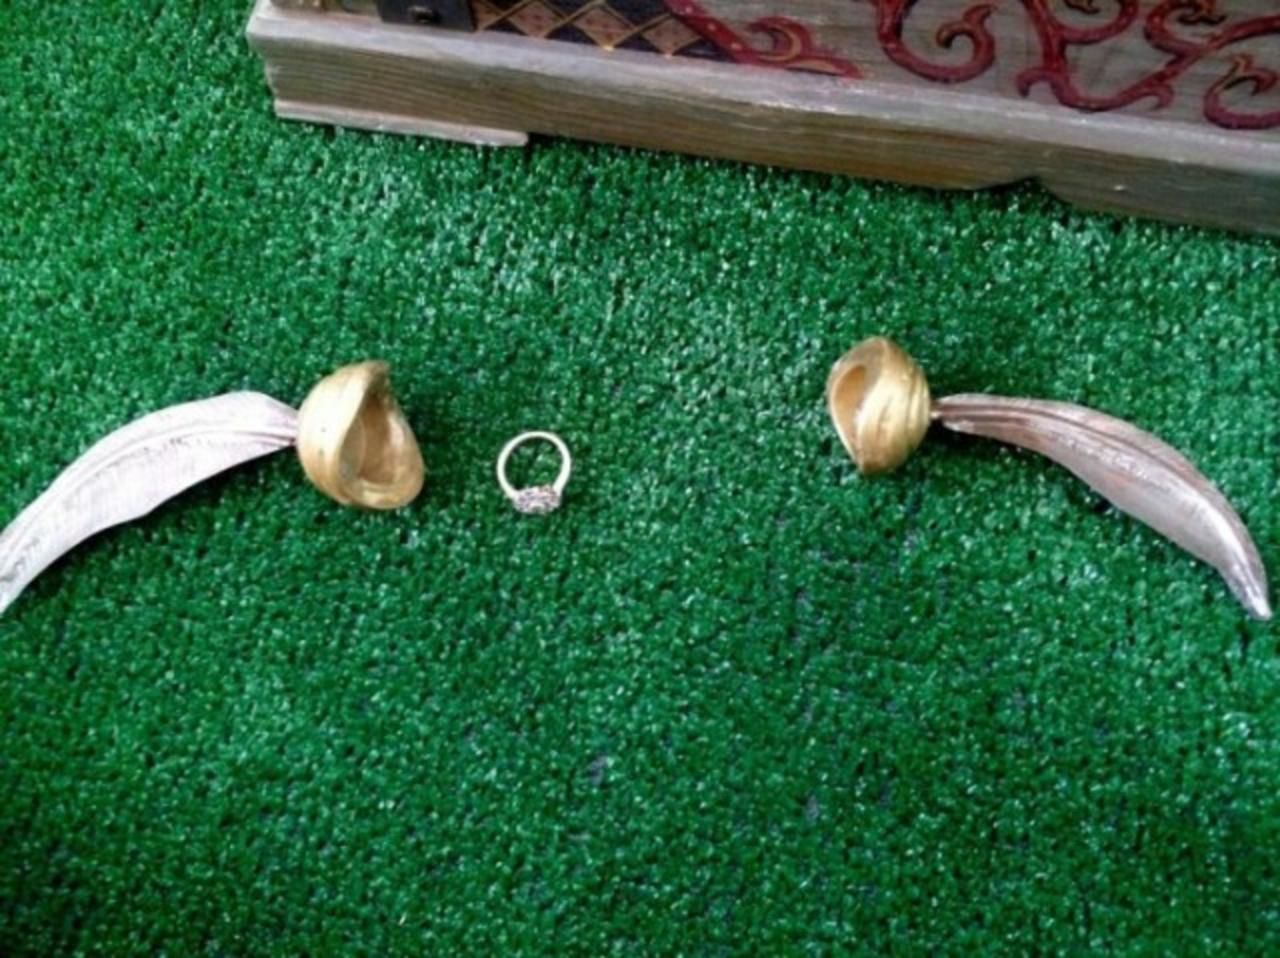 The Snitch opened up to hold the engagement ring, which was also created on CustomMade by Jim Grahl.